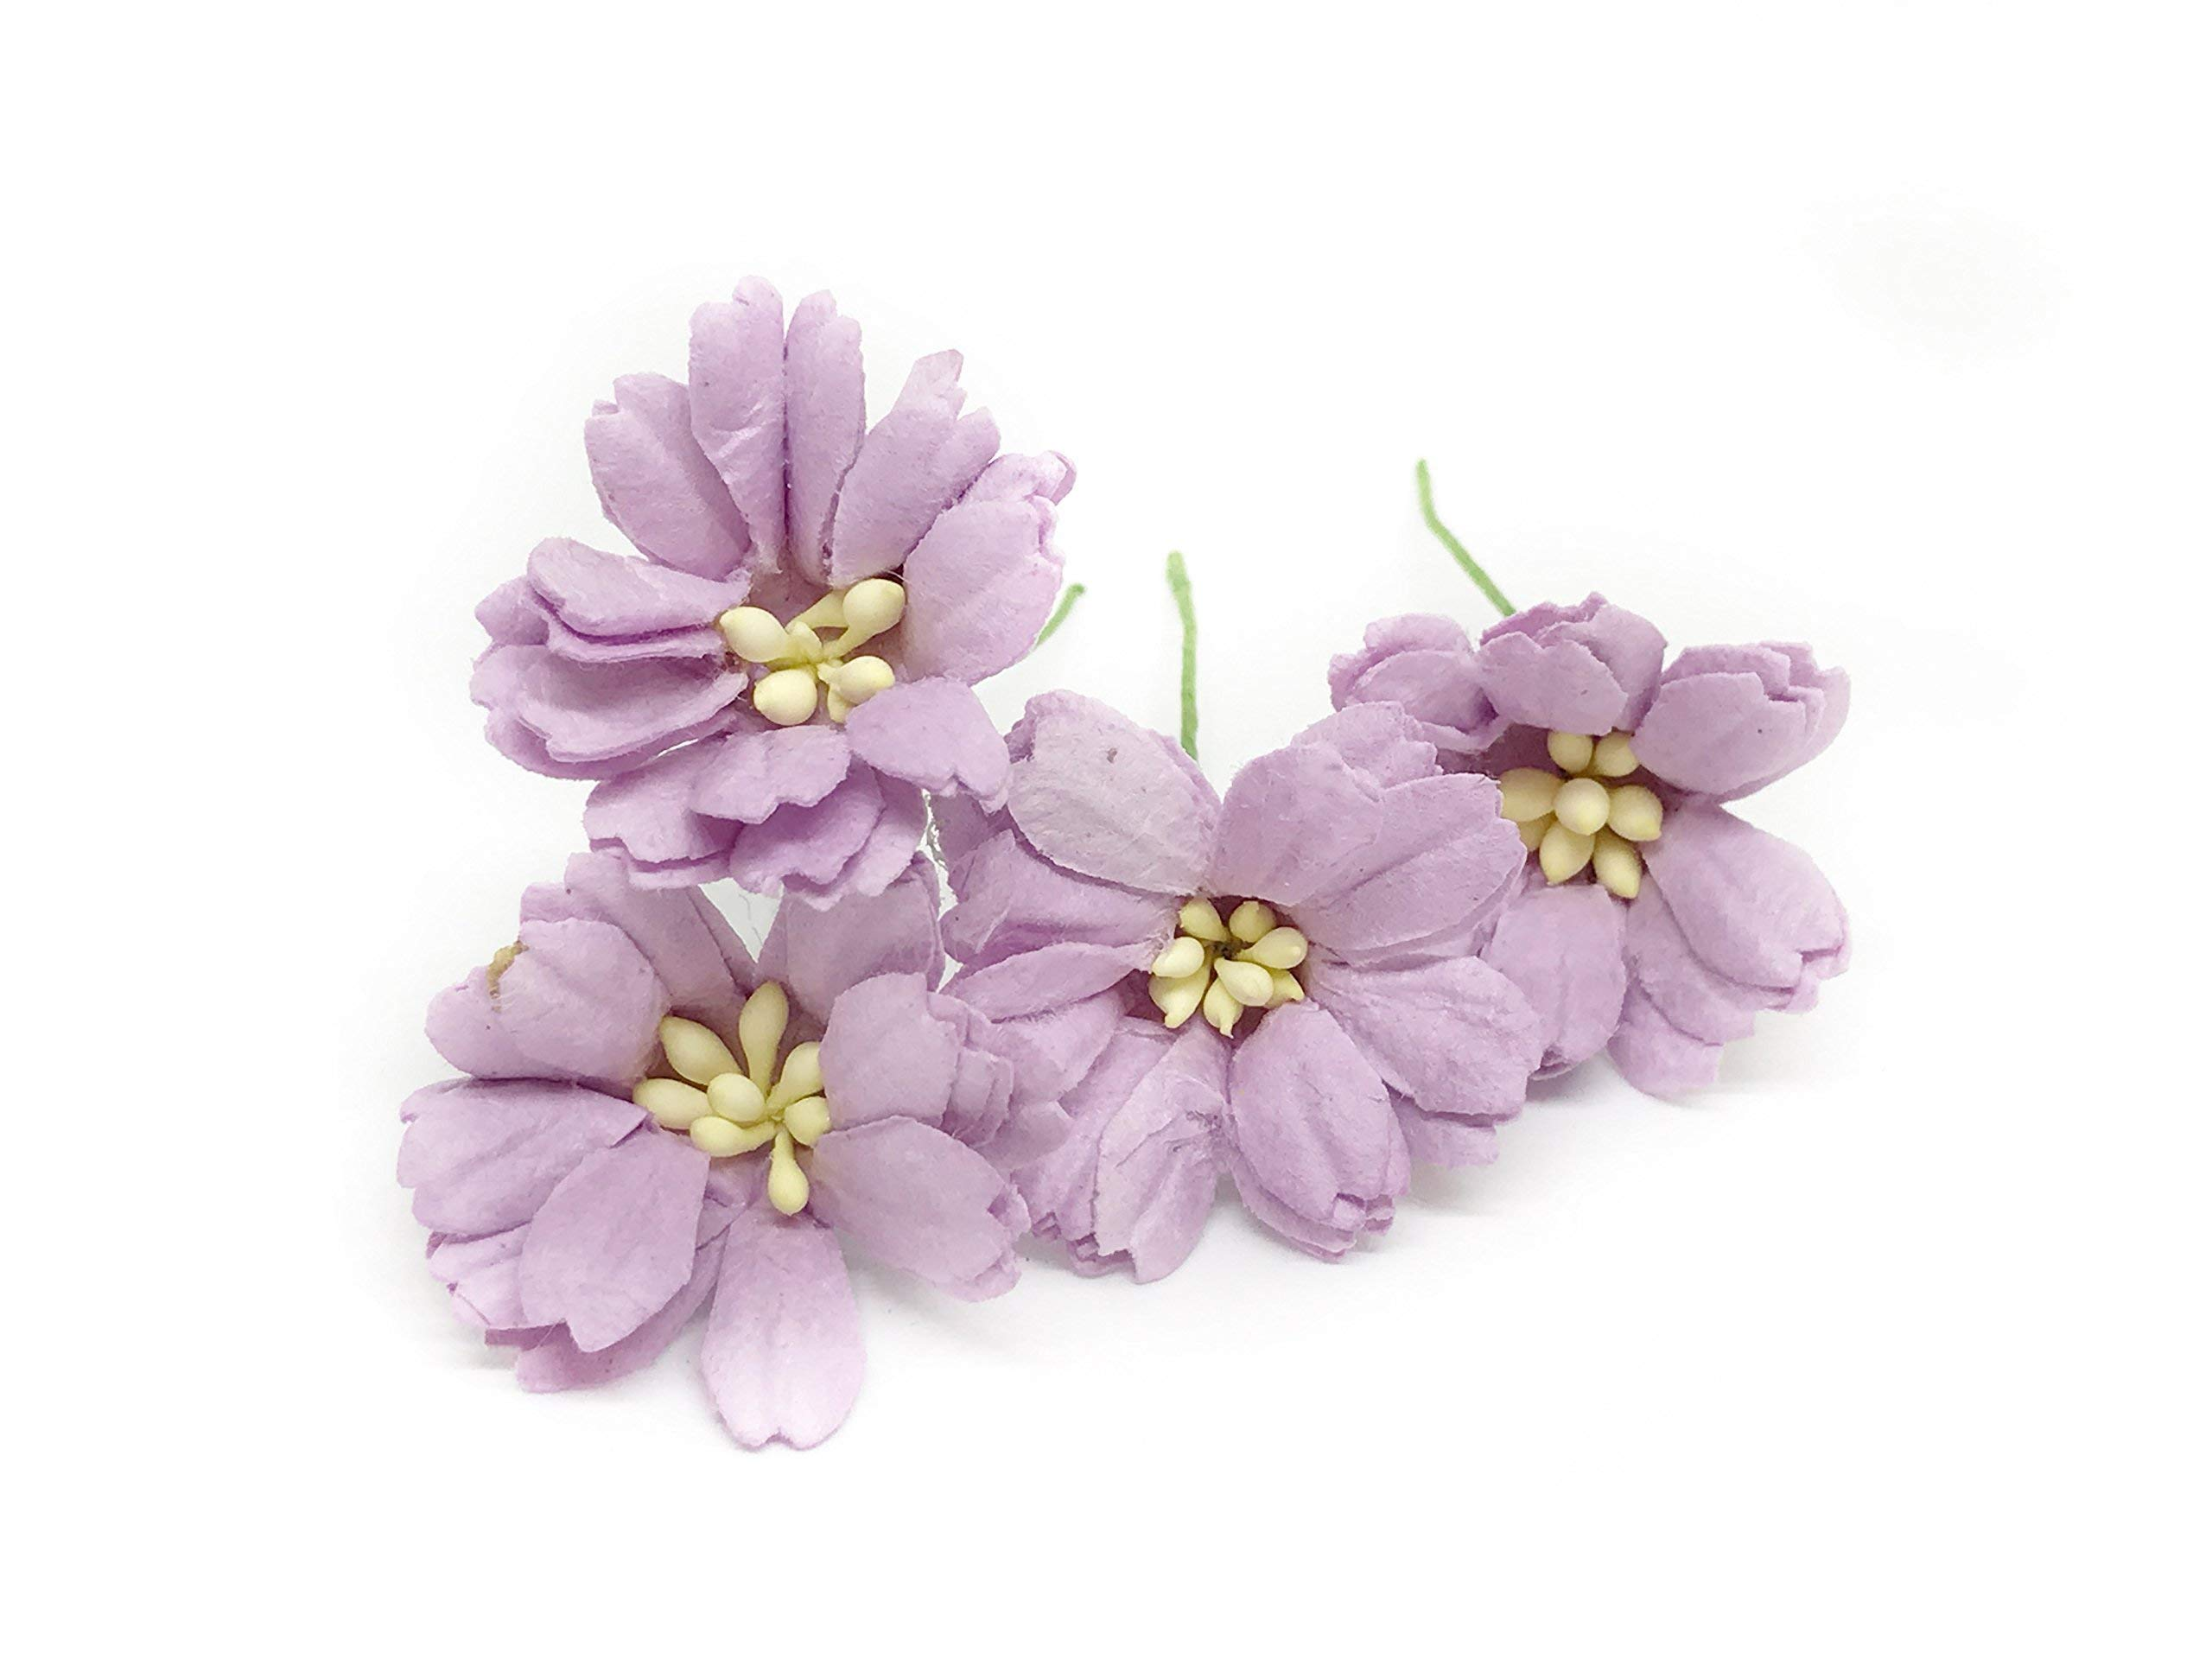 15-Lilac-Purple-Paper-Daisies-Mulberry-Paper-Flowers-Miniature-Flowers-Wedding-Decor-Flowers-Artificial-Flowers-Craft-Flowers-25-Pieces